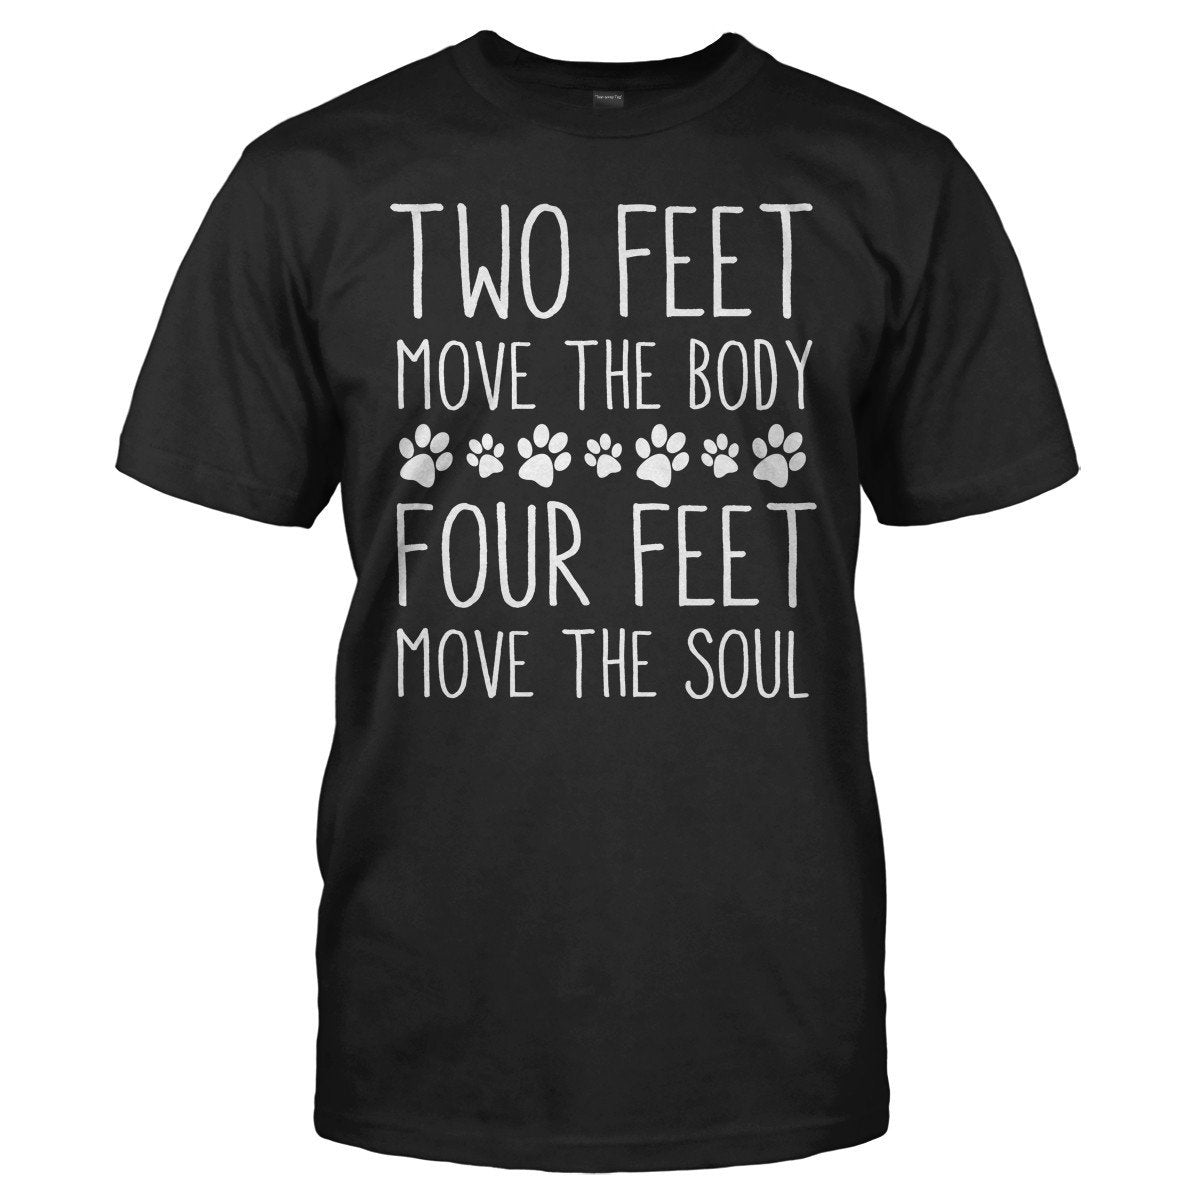 Two Feet Move The Body. Four Feet Move The Soul. - T Shirt